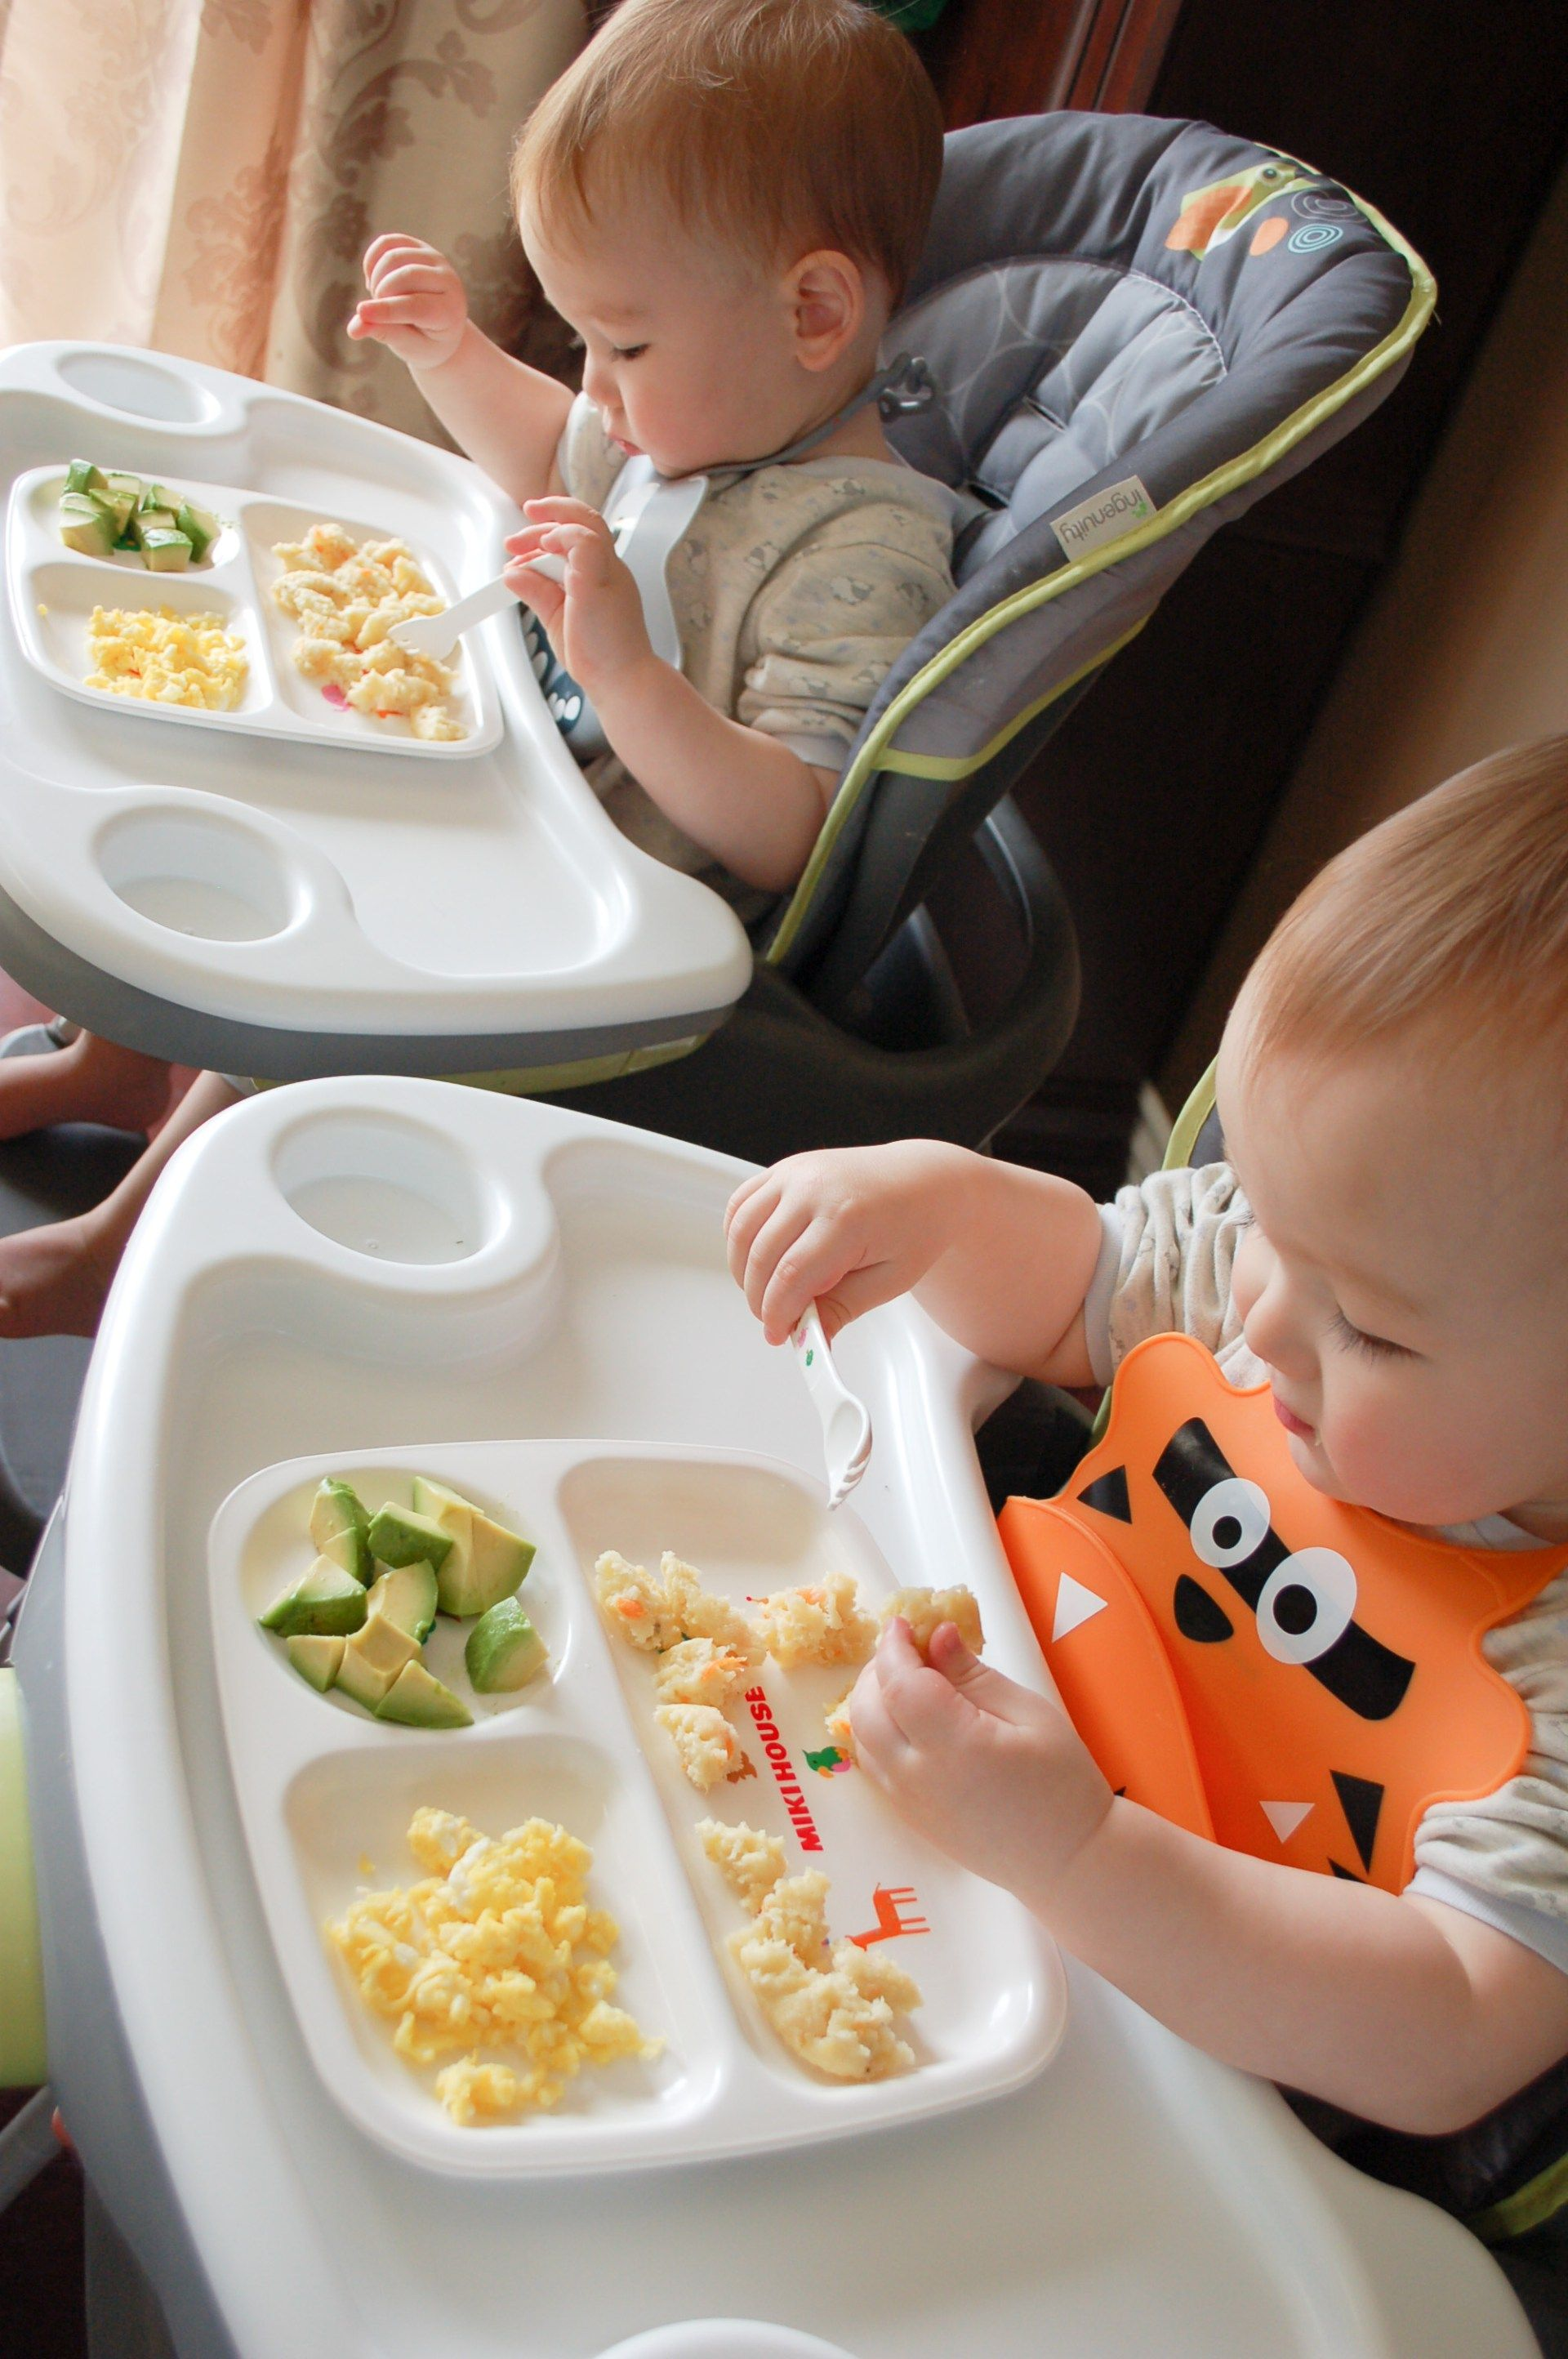 7 toddler meal baby finger food ideas baby finger foods baby baby finger food toddler meal ideas mommyoutnumbered 9 forumfinder Gallery